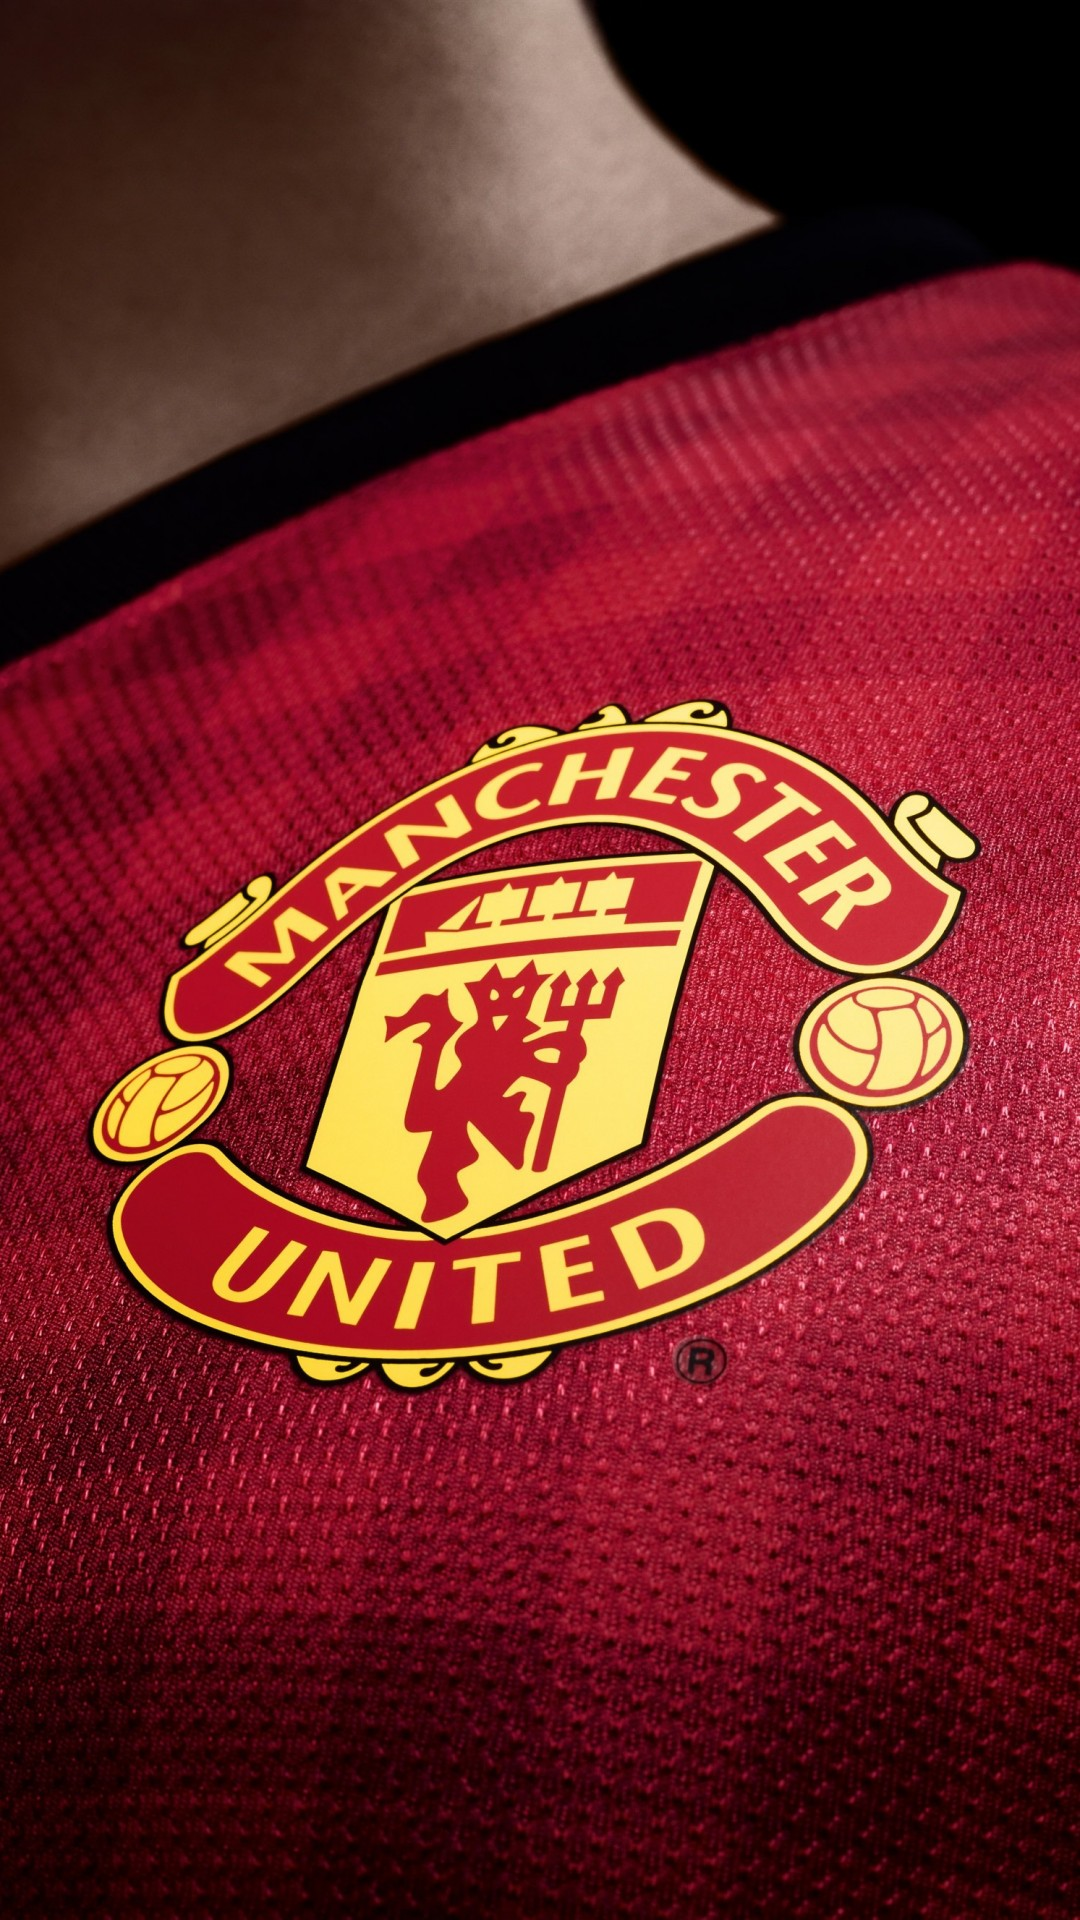 Manchester United Logo Shirt Wallpaper for SAMSUNG Galaxy S4